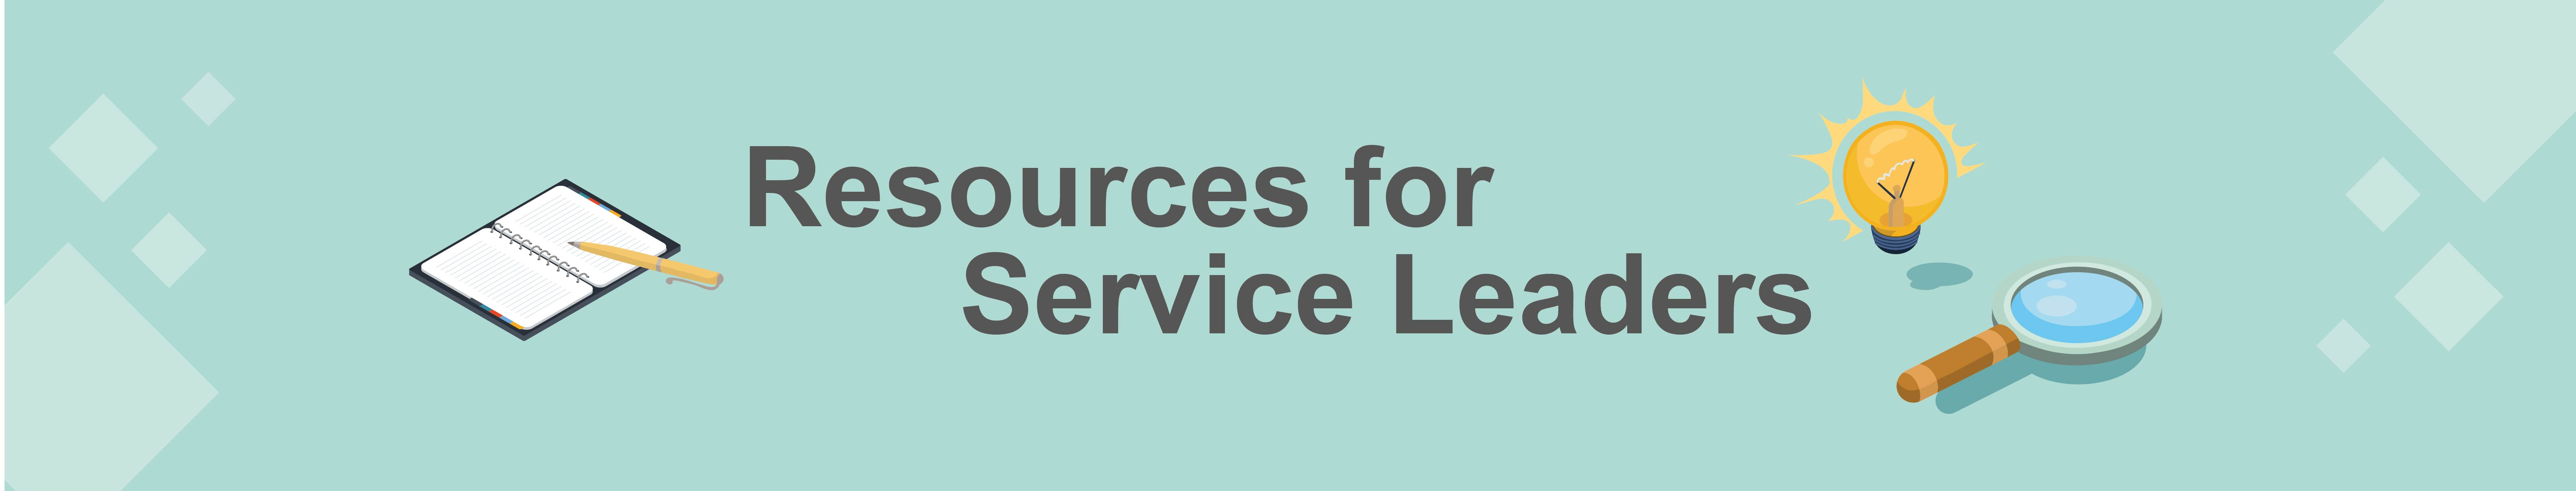 Resources for Services Leaders